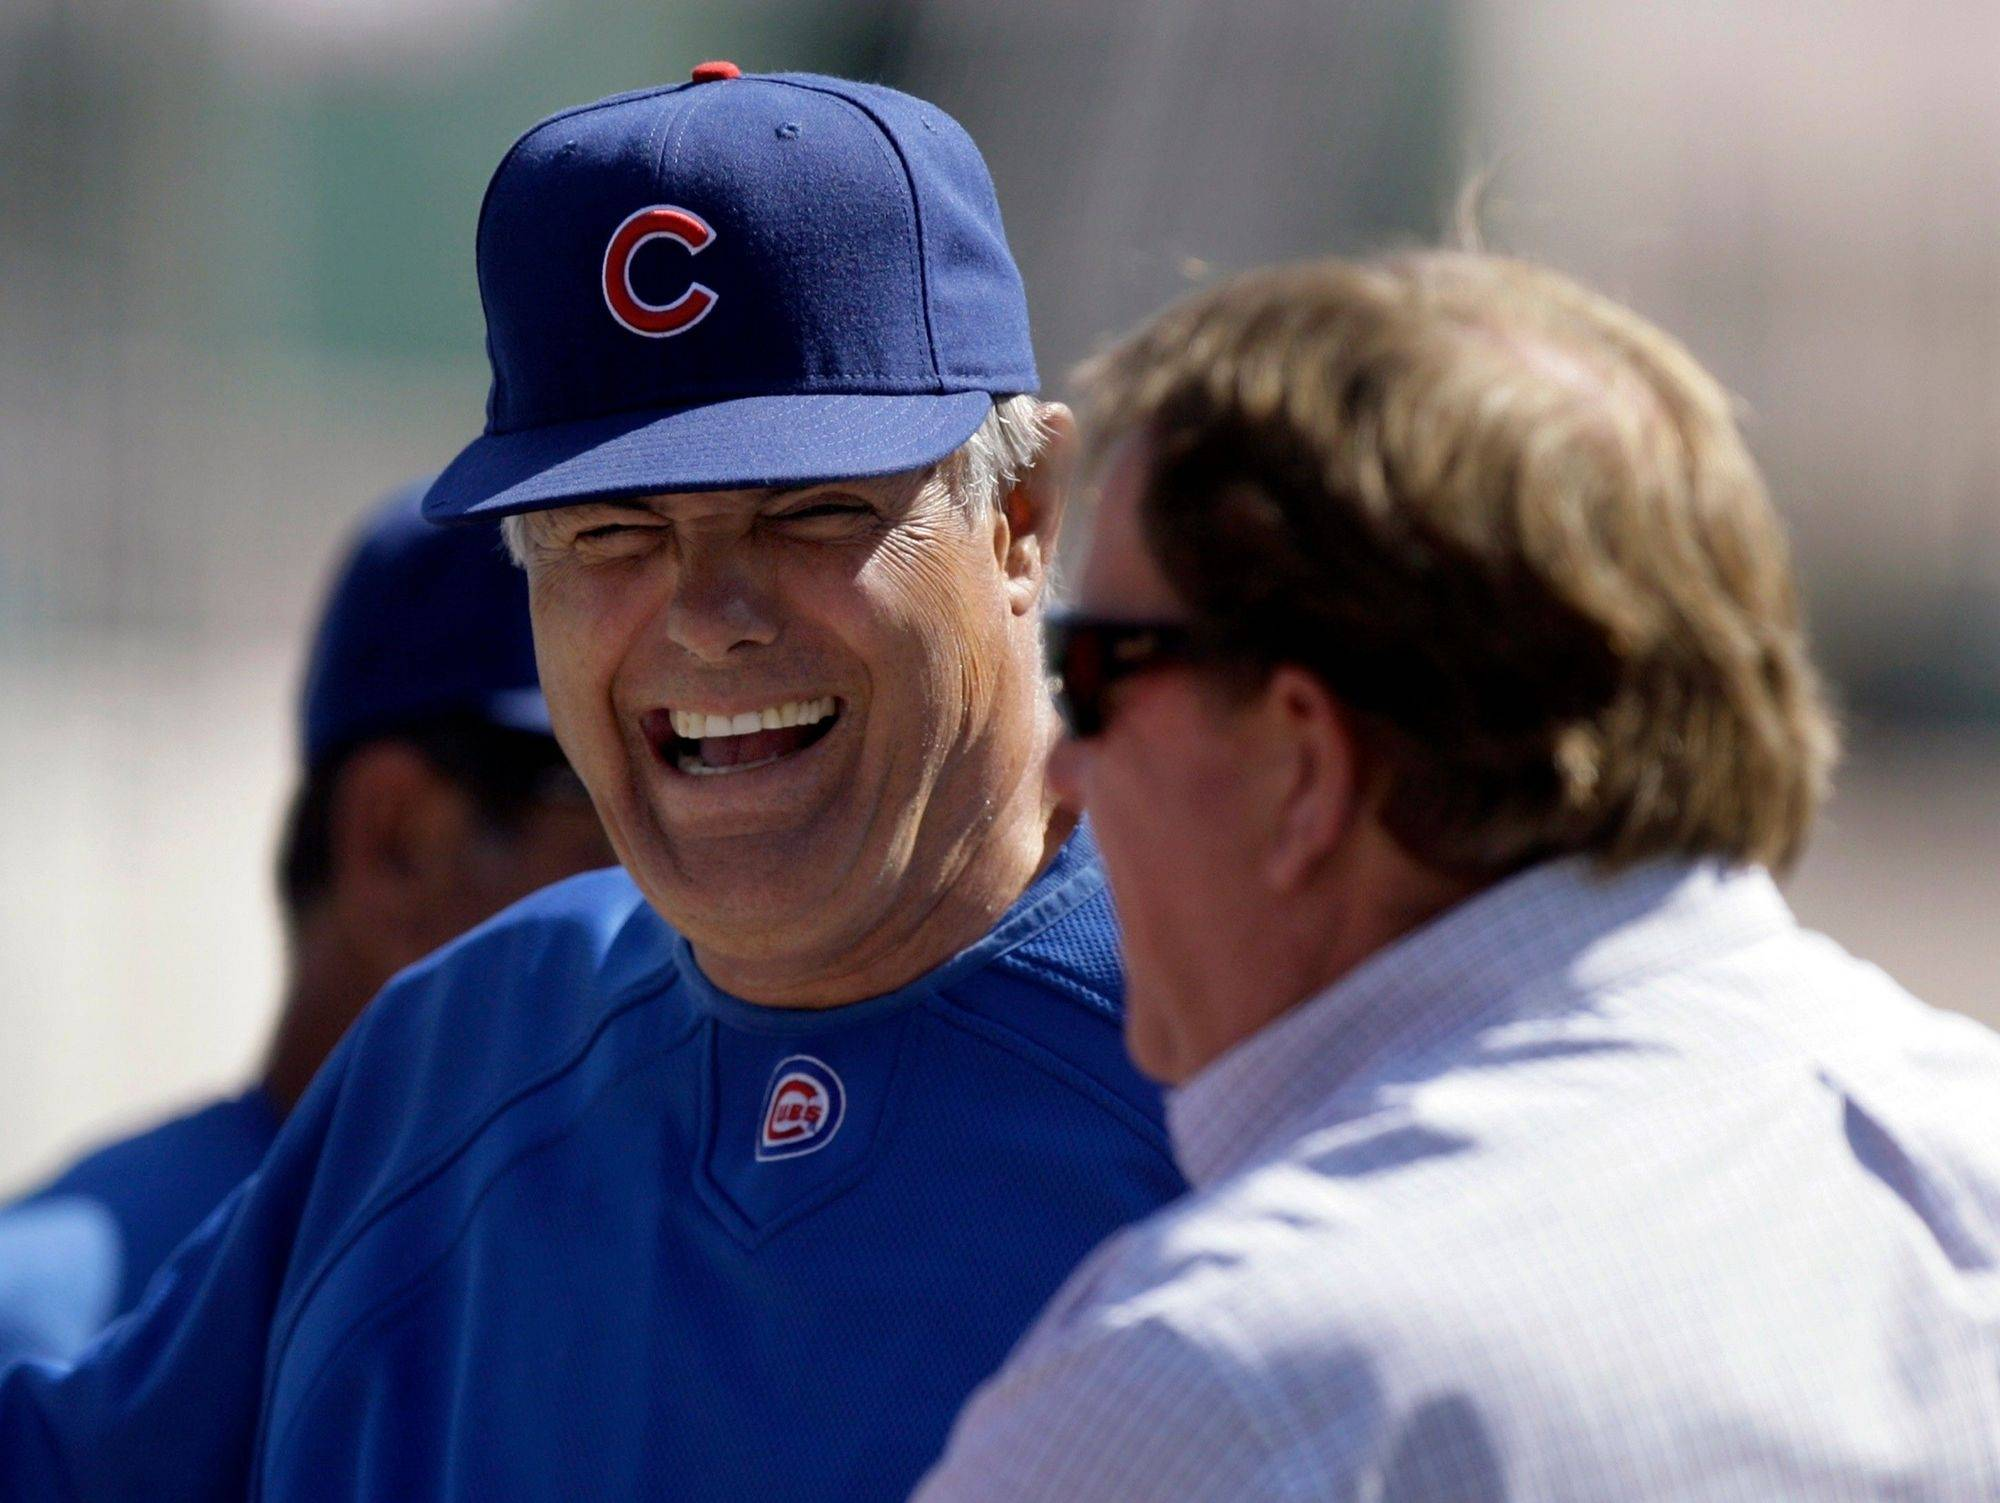 Things looked promising for Cubs manager Lou Piniella and general manager Jim Hendry during spring training last March, but now Hendry has another rebuilding effort to complete and a manager to hire.